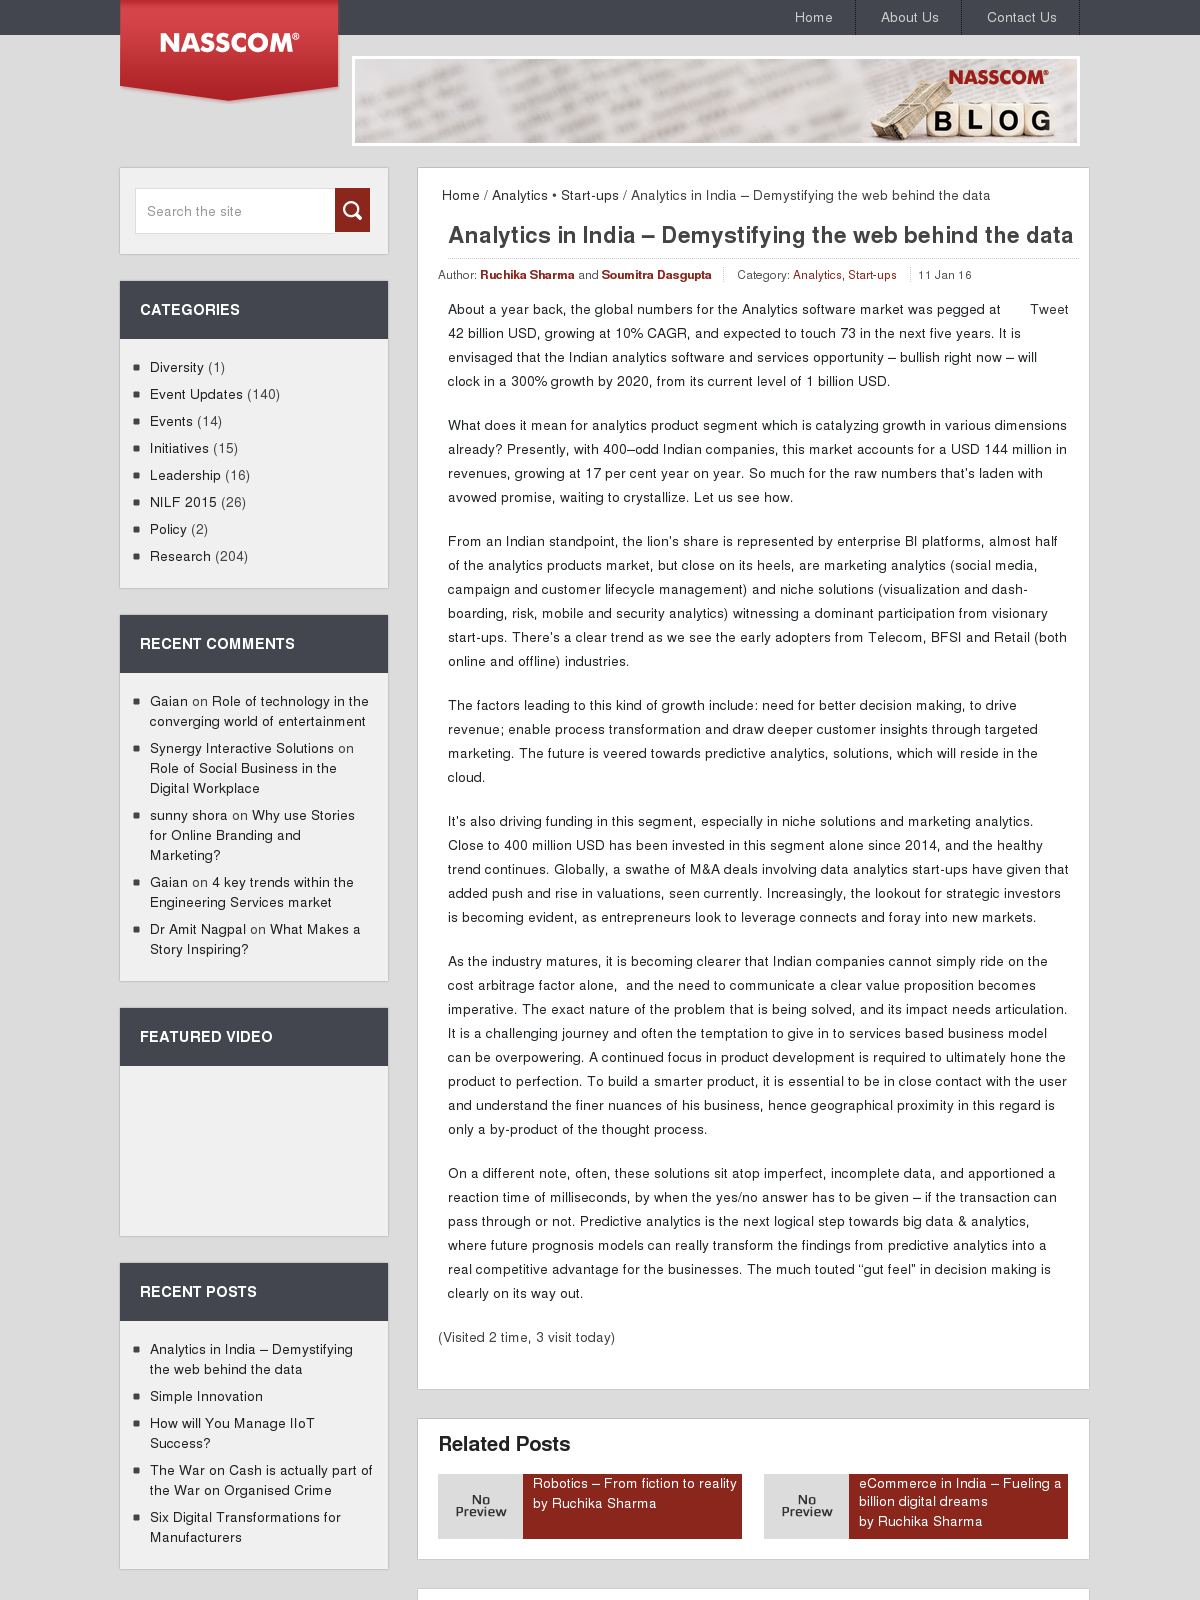 case study was outsourcing to india the right move Study center in shanghai, china this case is provided to students in class four, and due before class six a properly written bibliography is required.